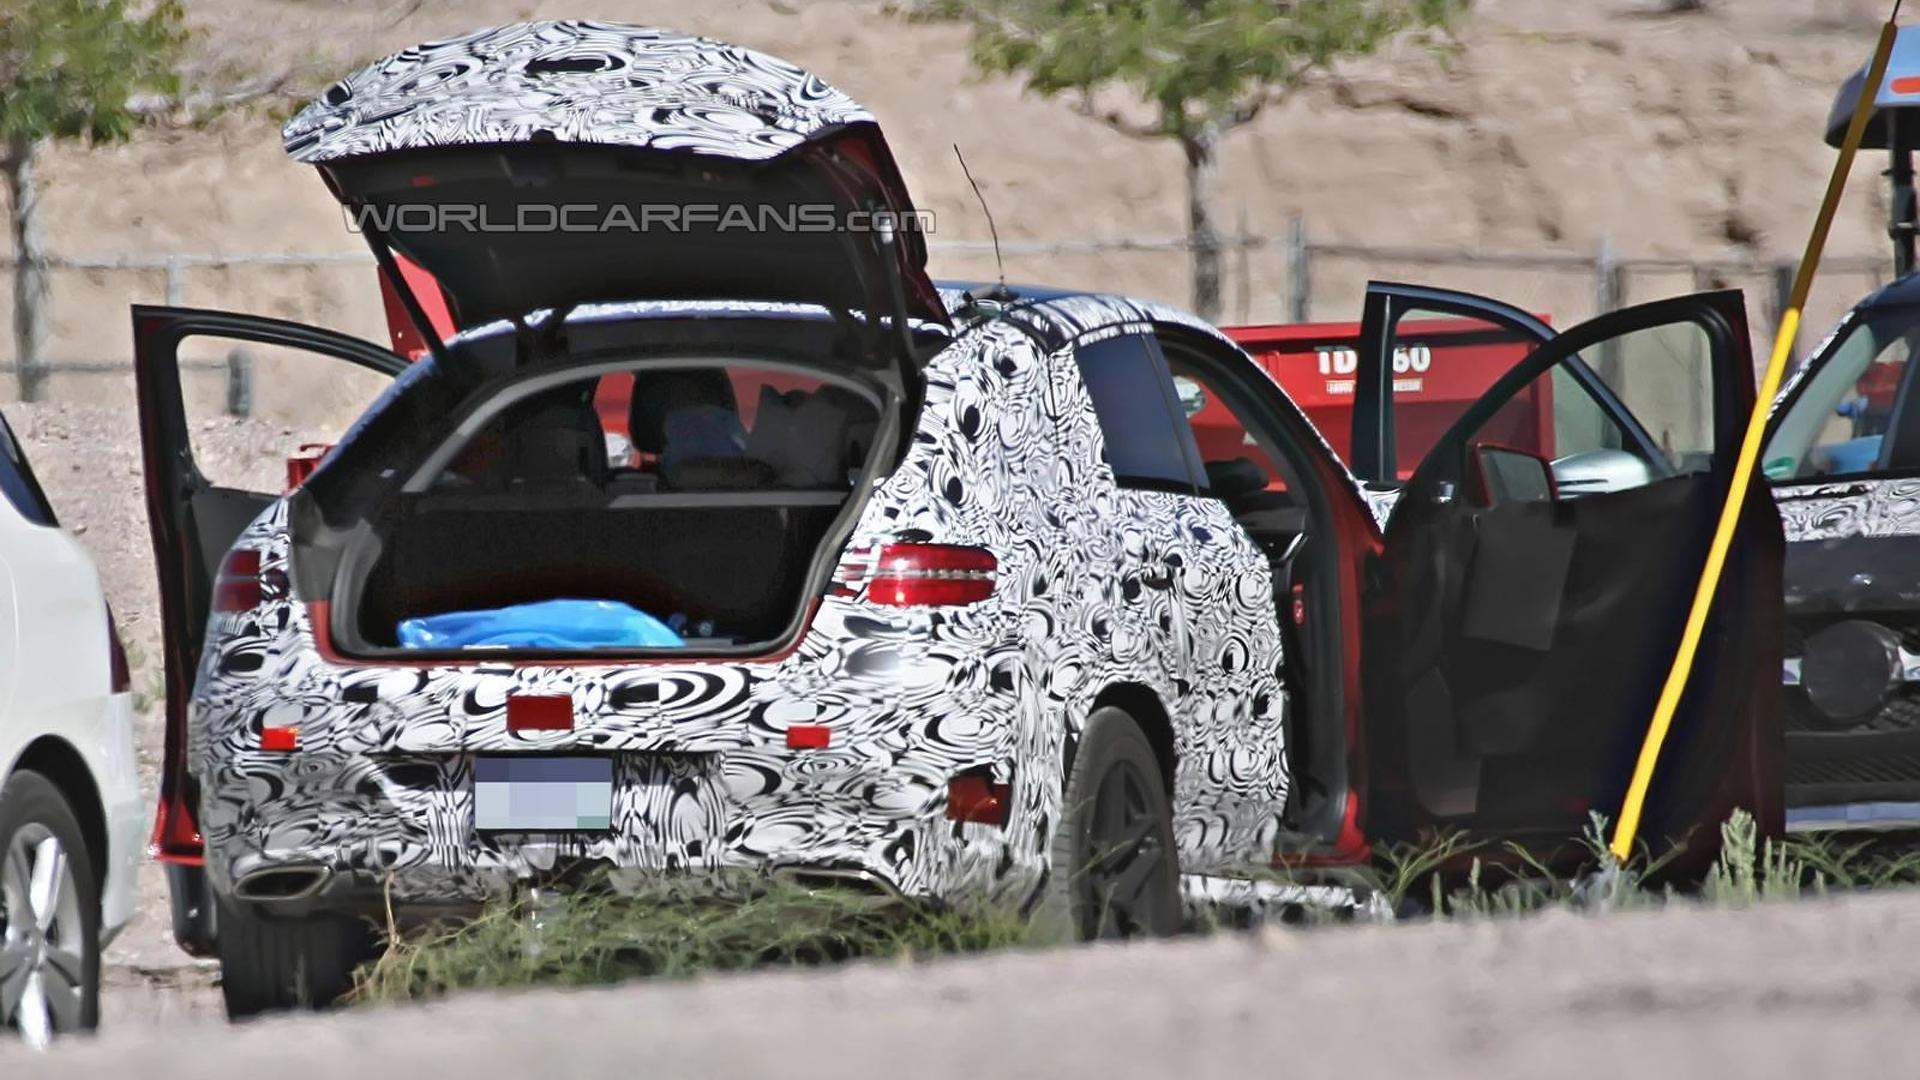 2016 Mercedes-Benz ML Coupe shows its small trunk in latest spy shots, AMG version also spotted